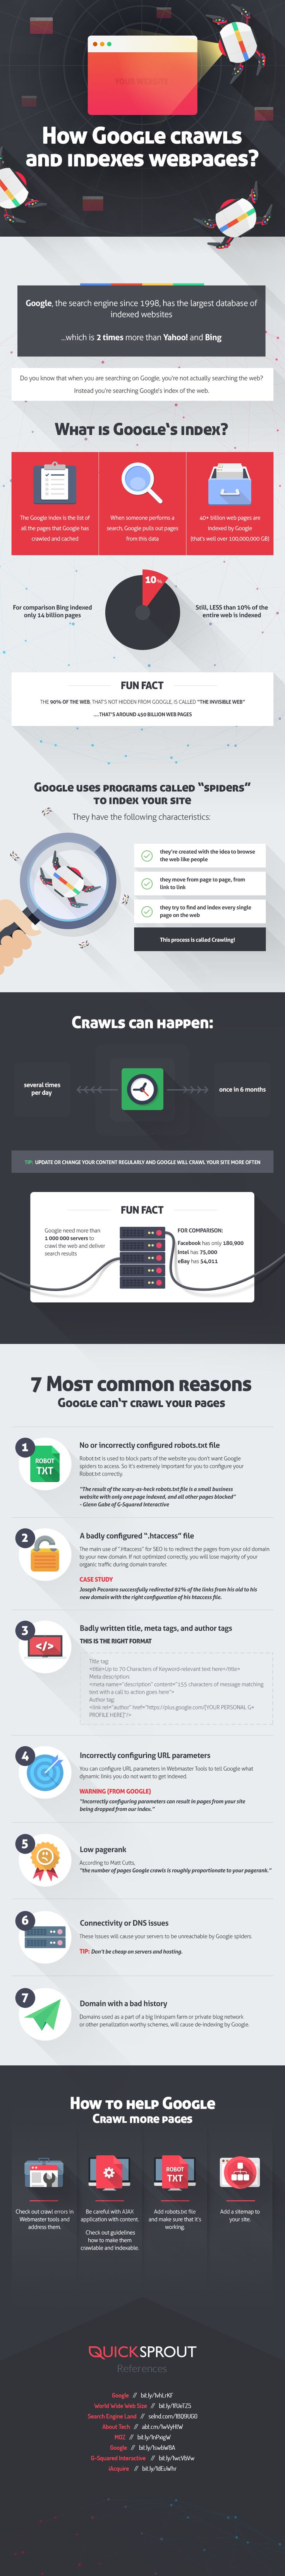 For a better SEO, learn how Google crawls your website.